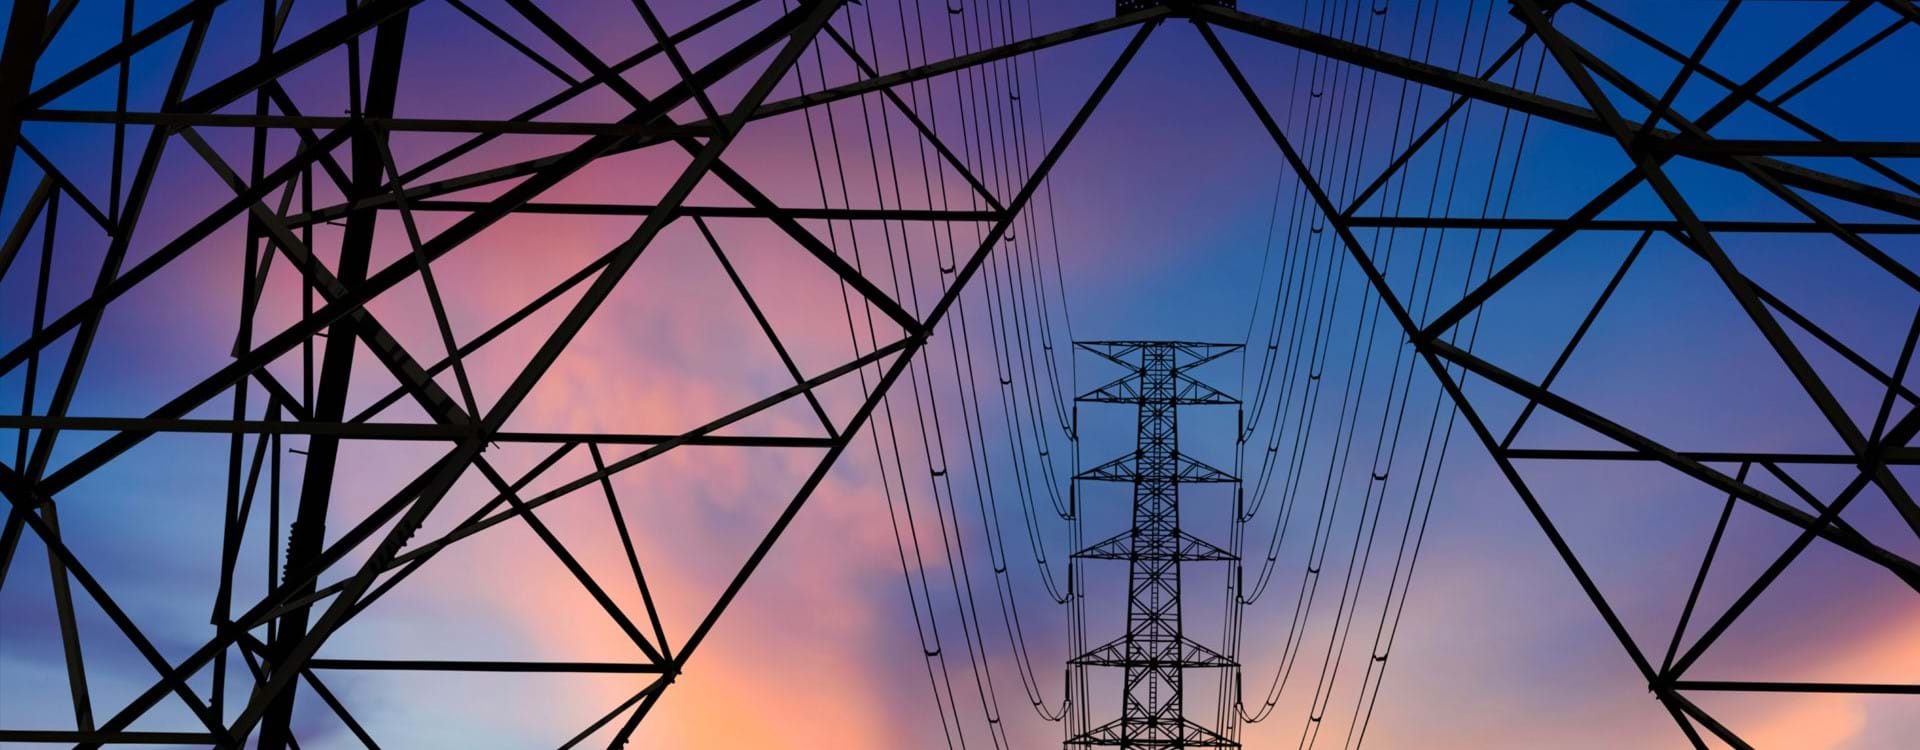 Let 2021 be the year you take control of your business energy